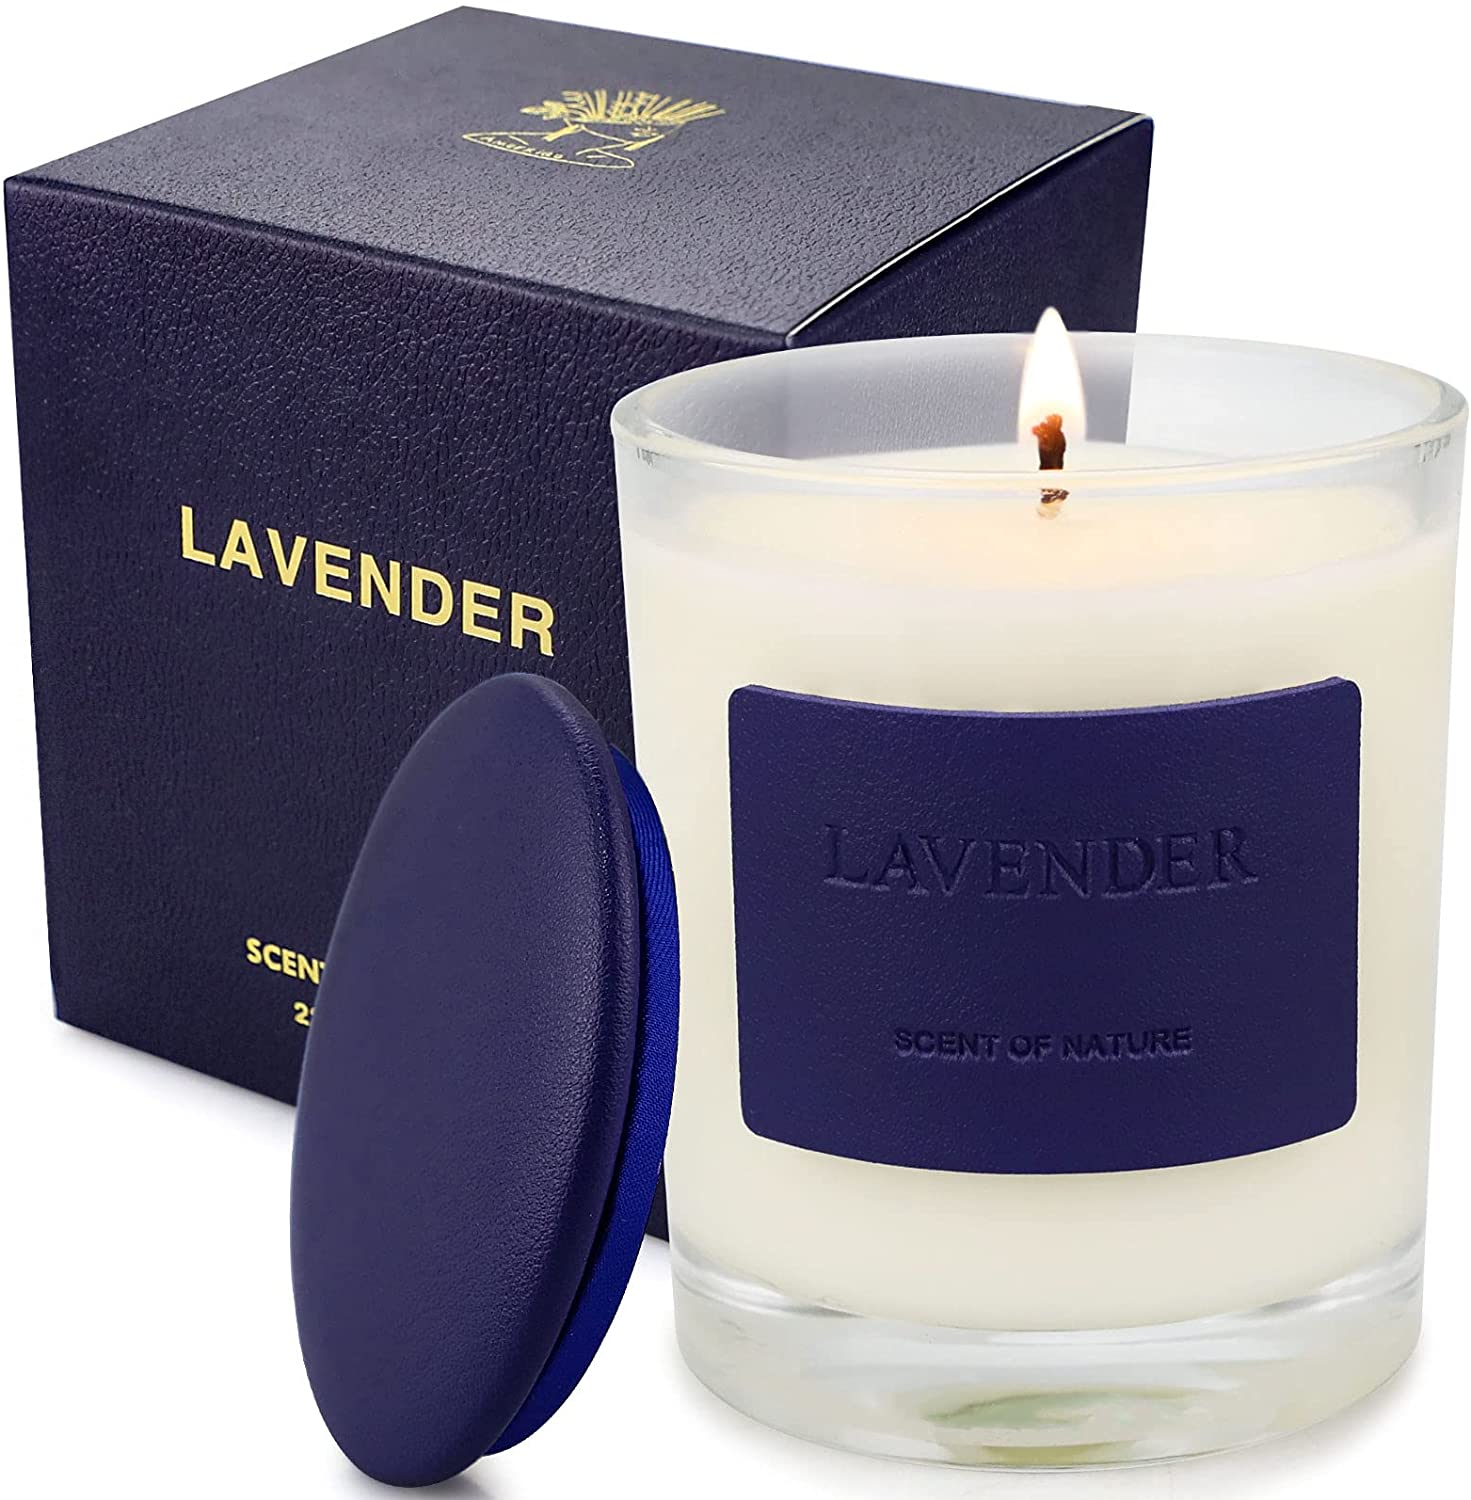 Lavender Candle, Scented Candles for Home 7.8oz 45 Hours Burn, Soy Wax Organic Candle Aromatherapy Candle Jar Candles for Birthday, Candles Gifts for Women, Relaxation & Stress Relief